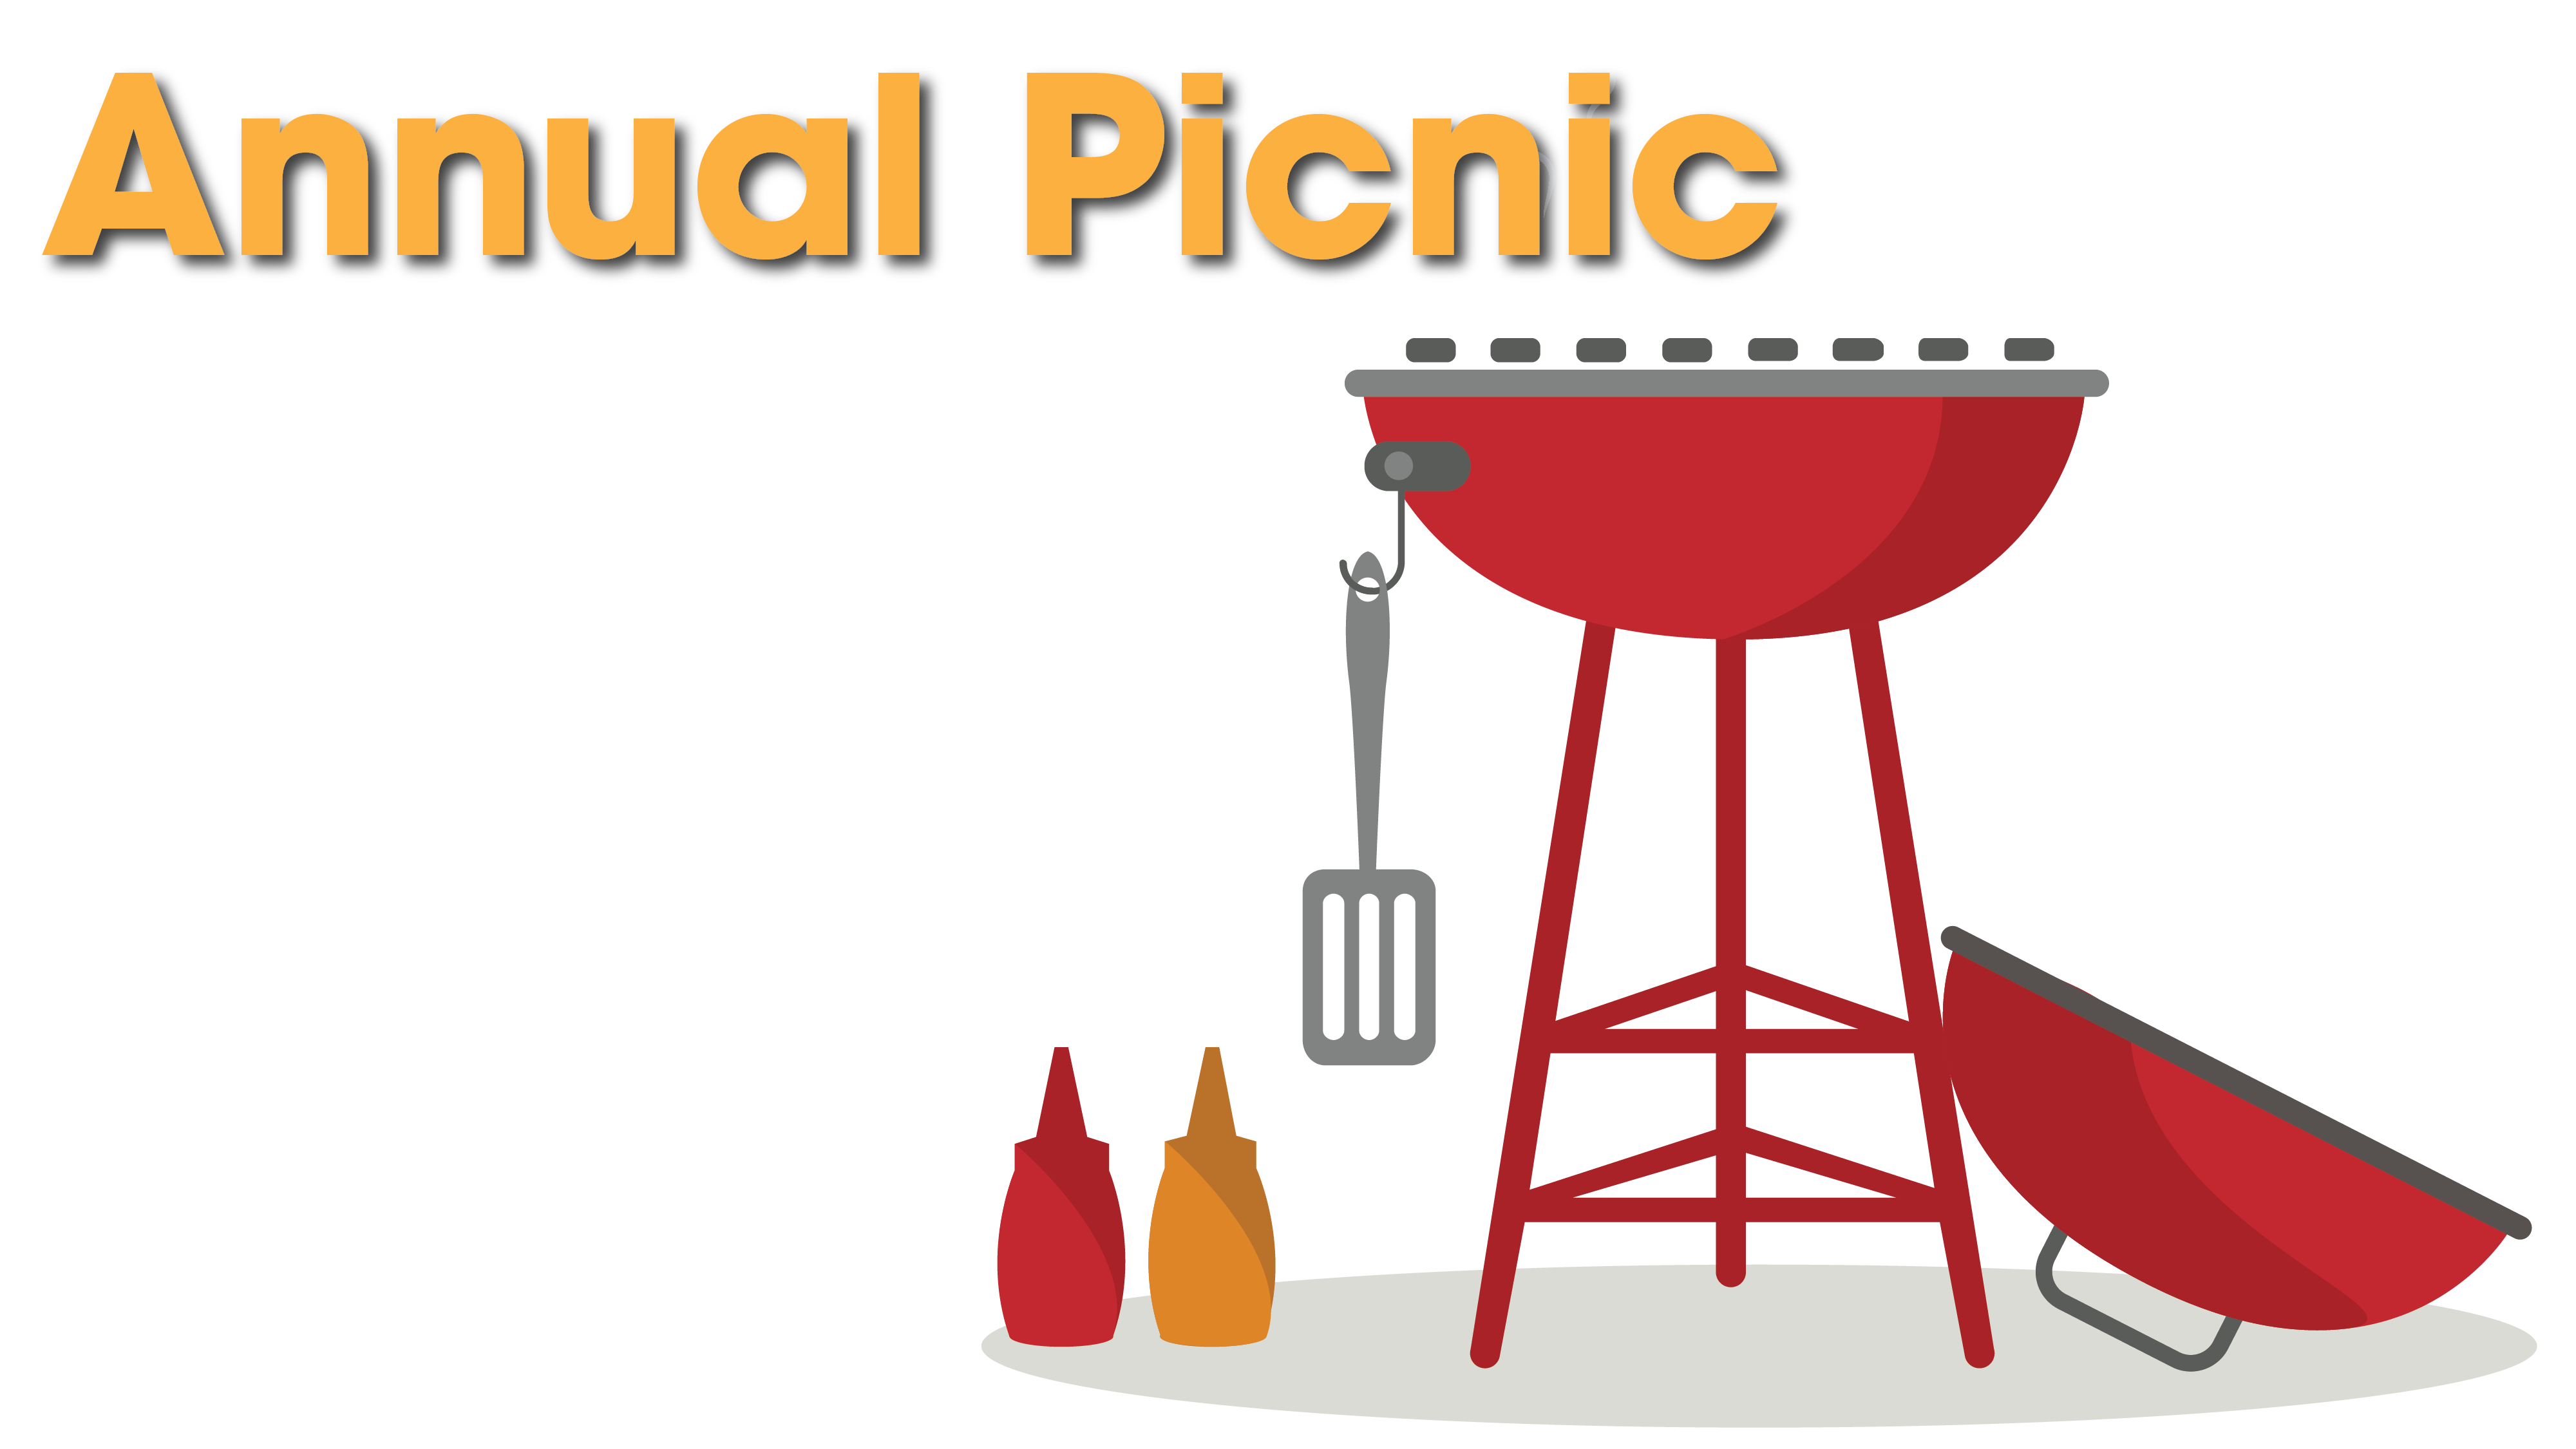 July clipart picnic. Annual family rochester ny